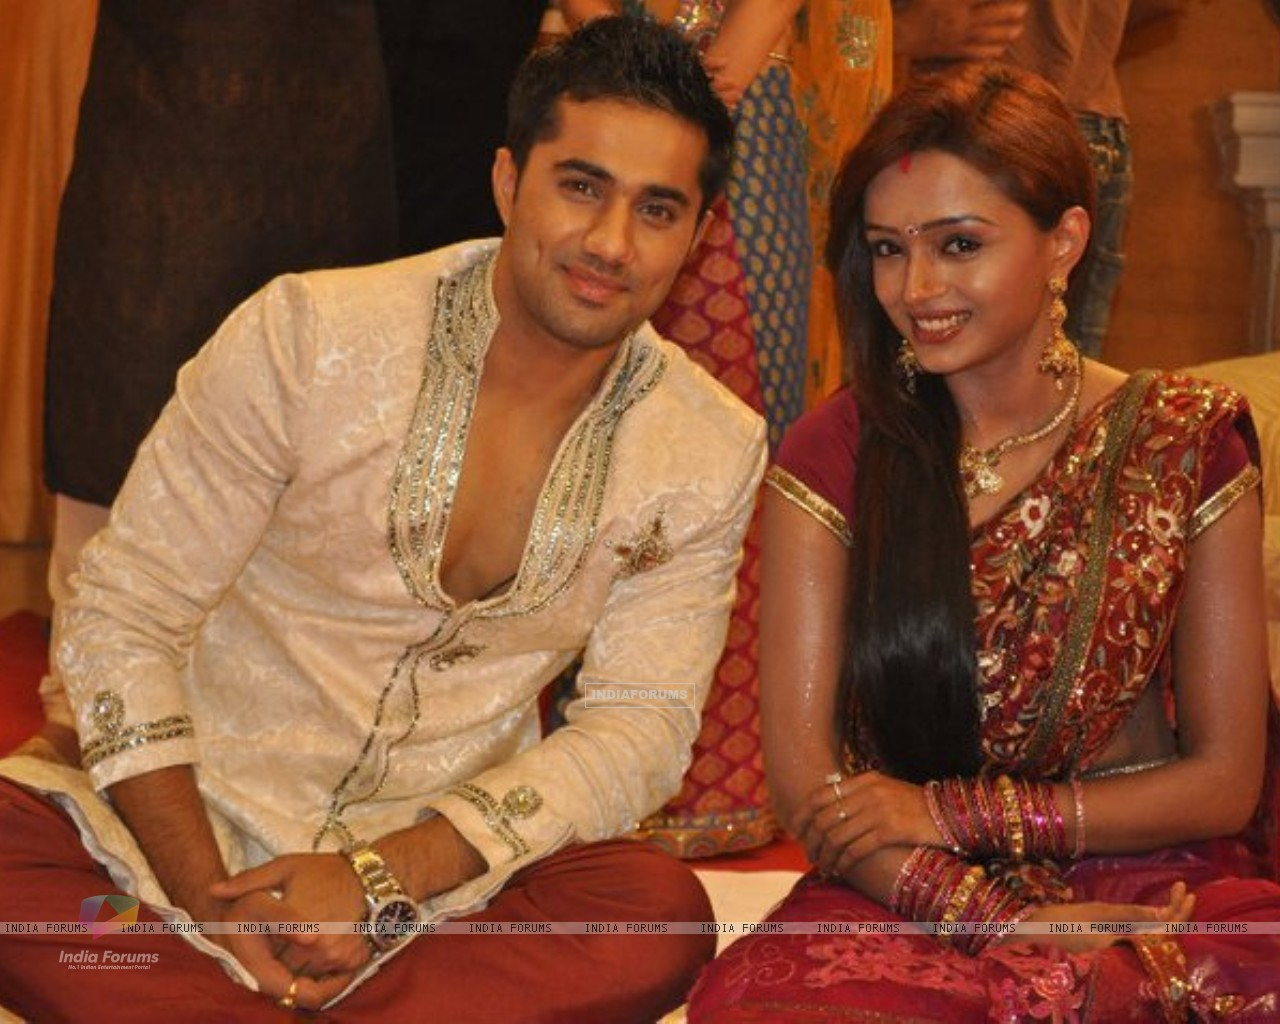 Parul and Vishal in tv show Rishton Se Badi Pratha (163486) size:1280x1024